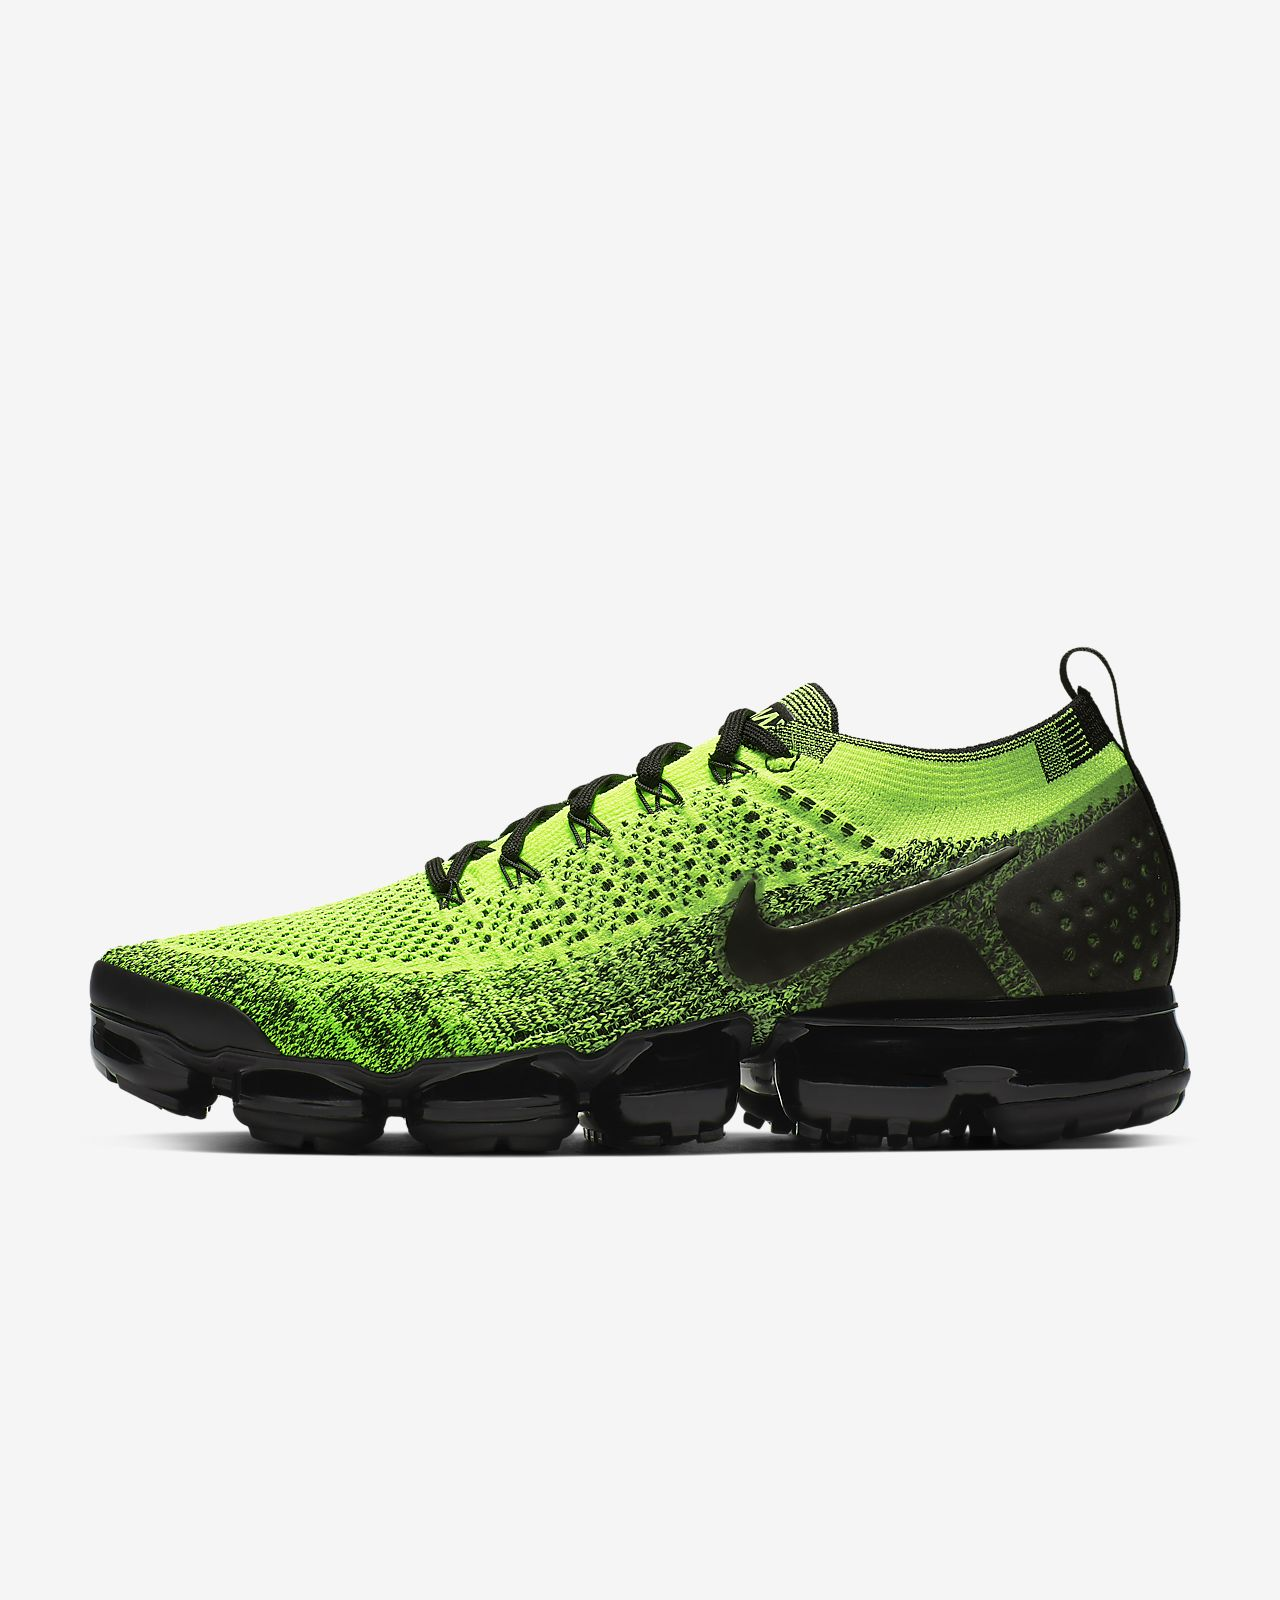 reputable site 831ee 0f78e Shoe. Nike Air VaporMax Flyknit 2